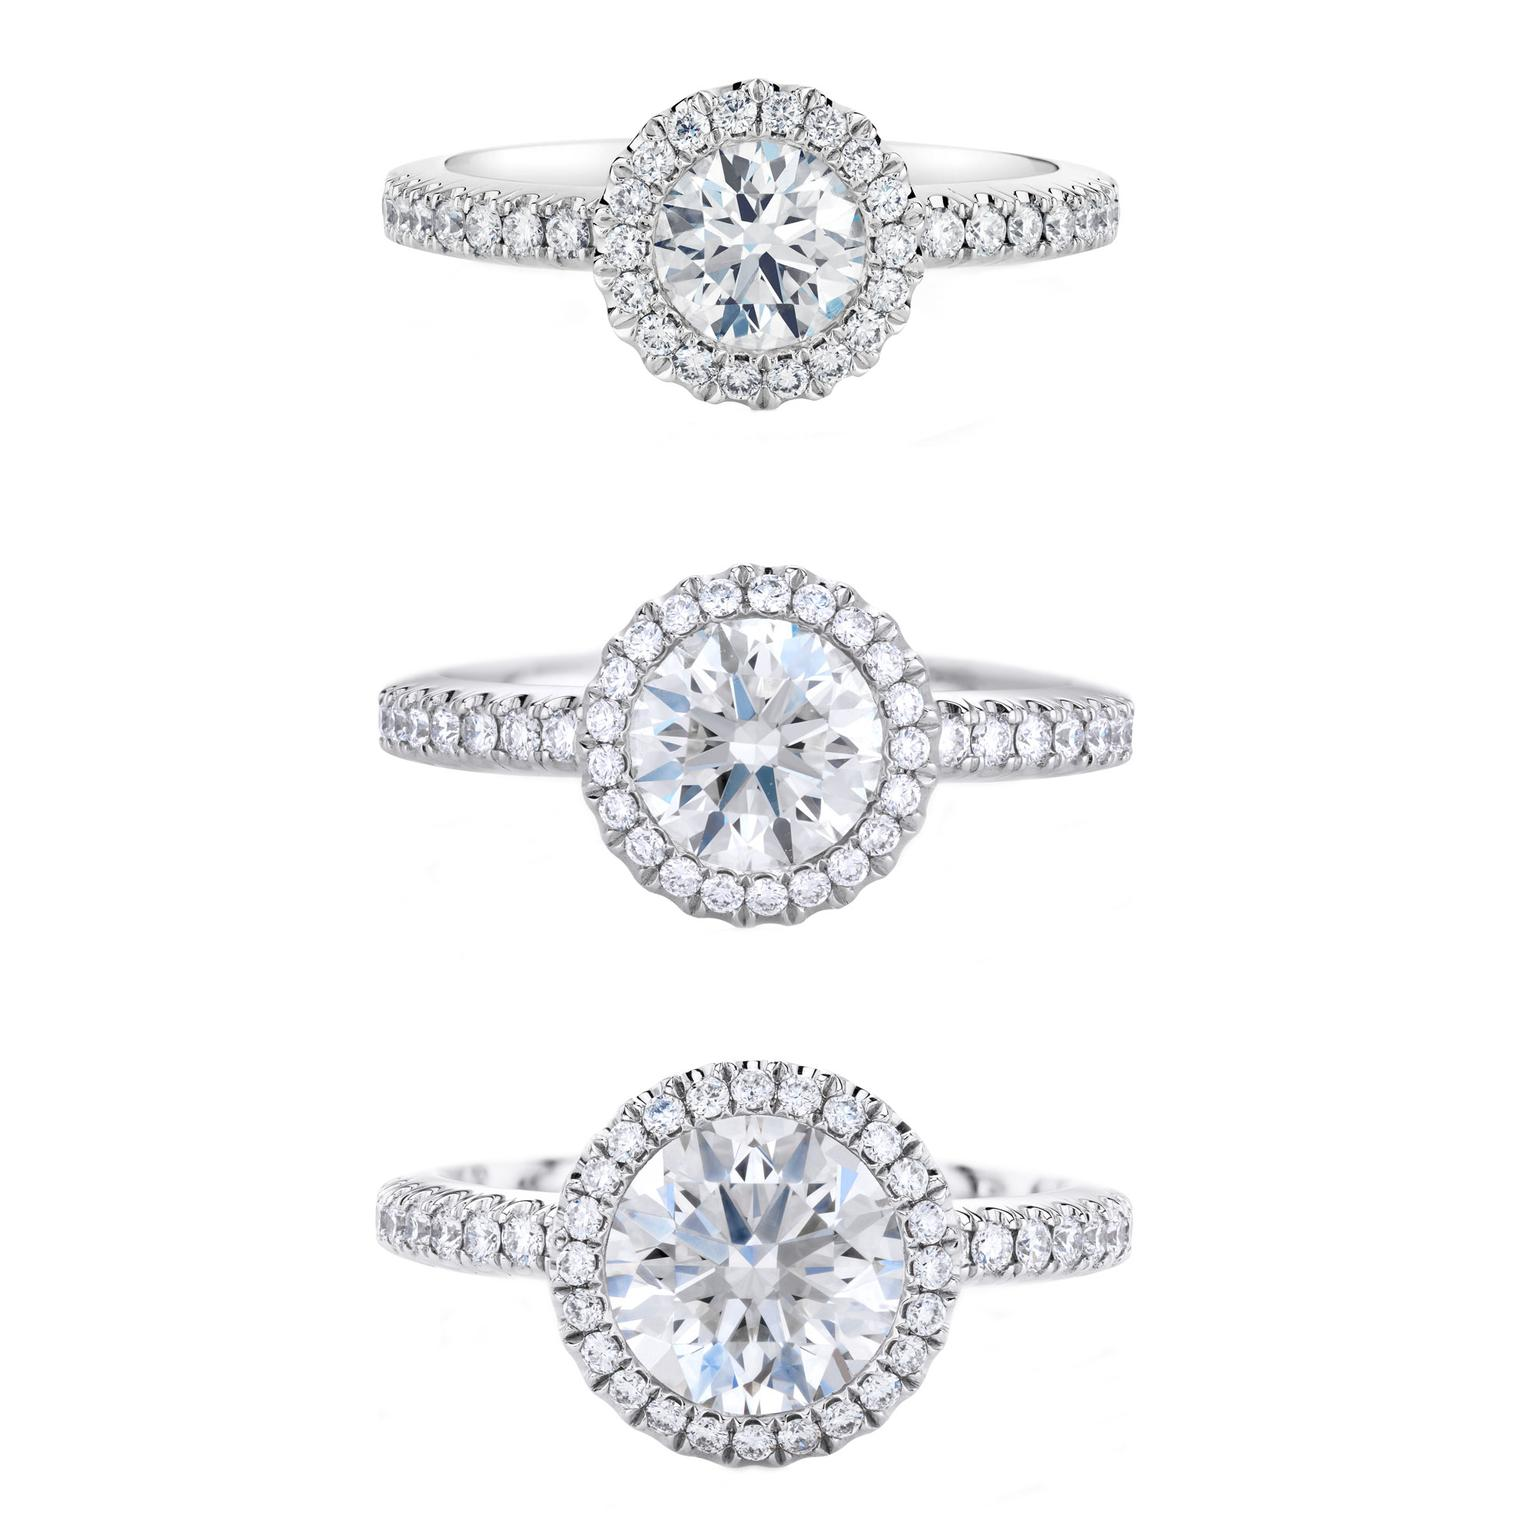 De Beers Aura diamond engagement rings 1ct, 1.5ct and 2ct